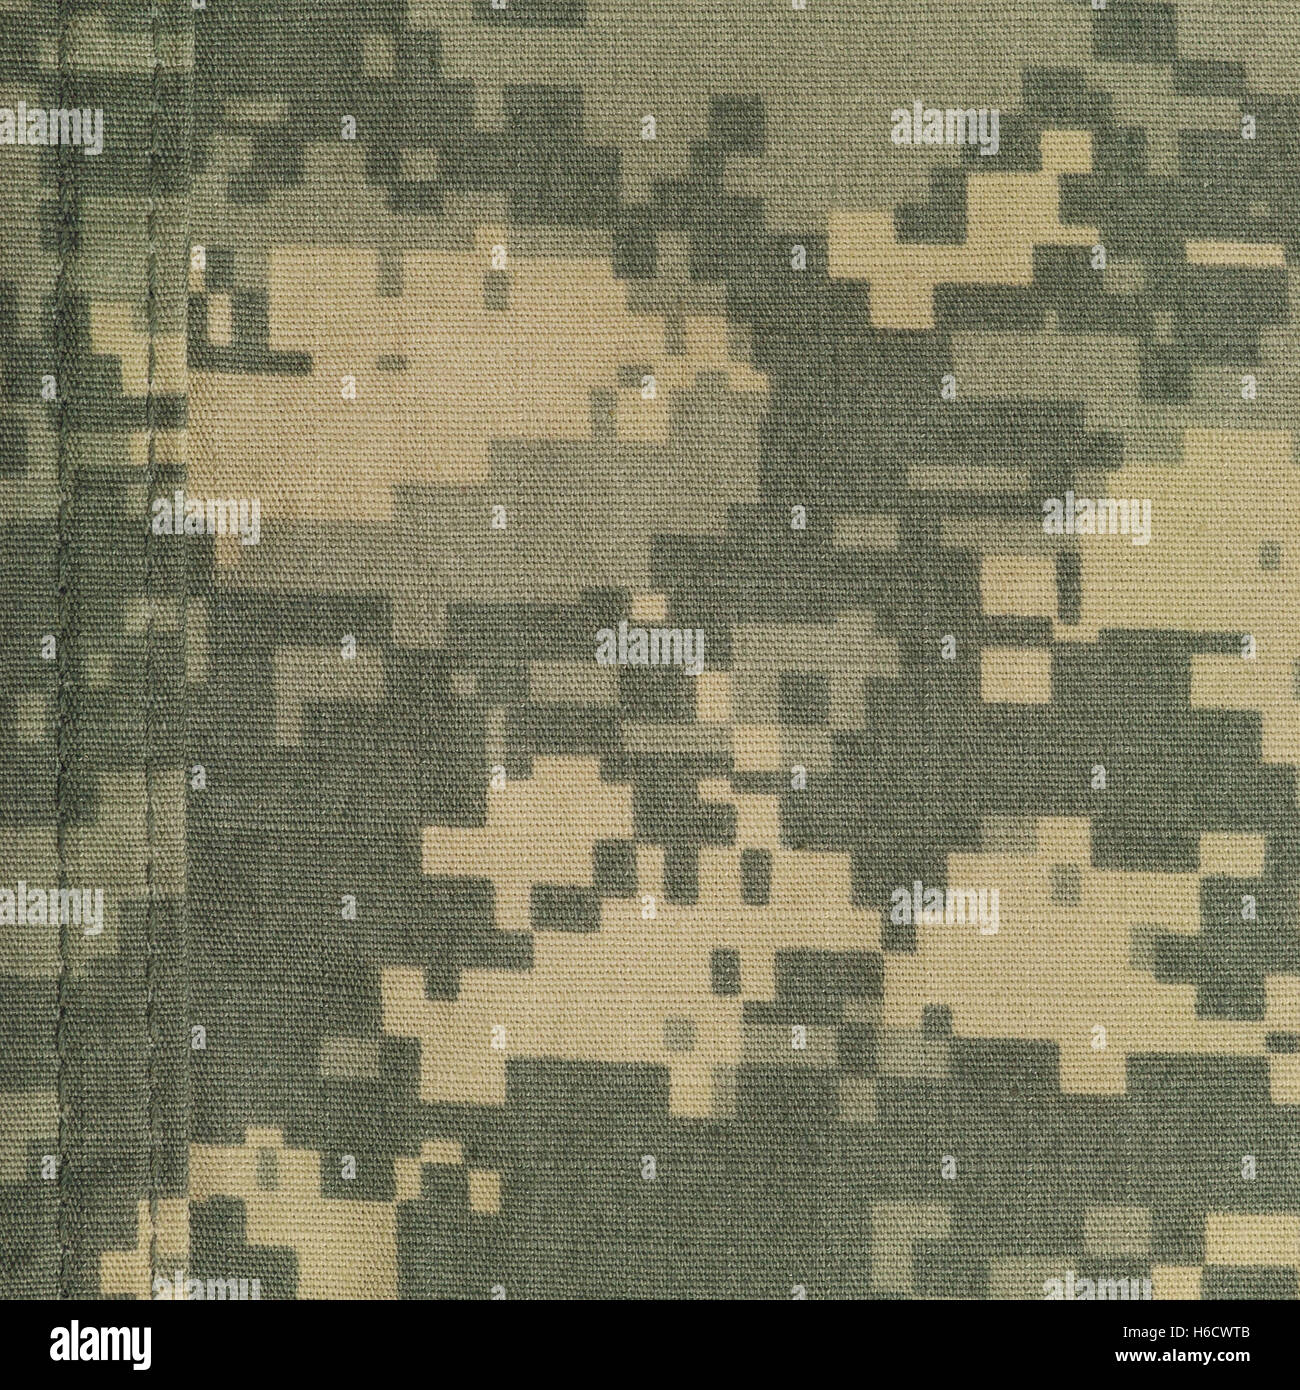 Universal camouflage pattern, army combat uniform digital camo, double thread seam, USA military ACU macro closeup, - Stock Image